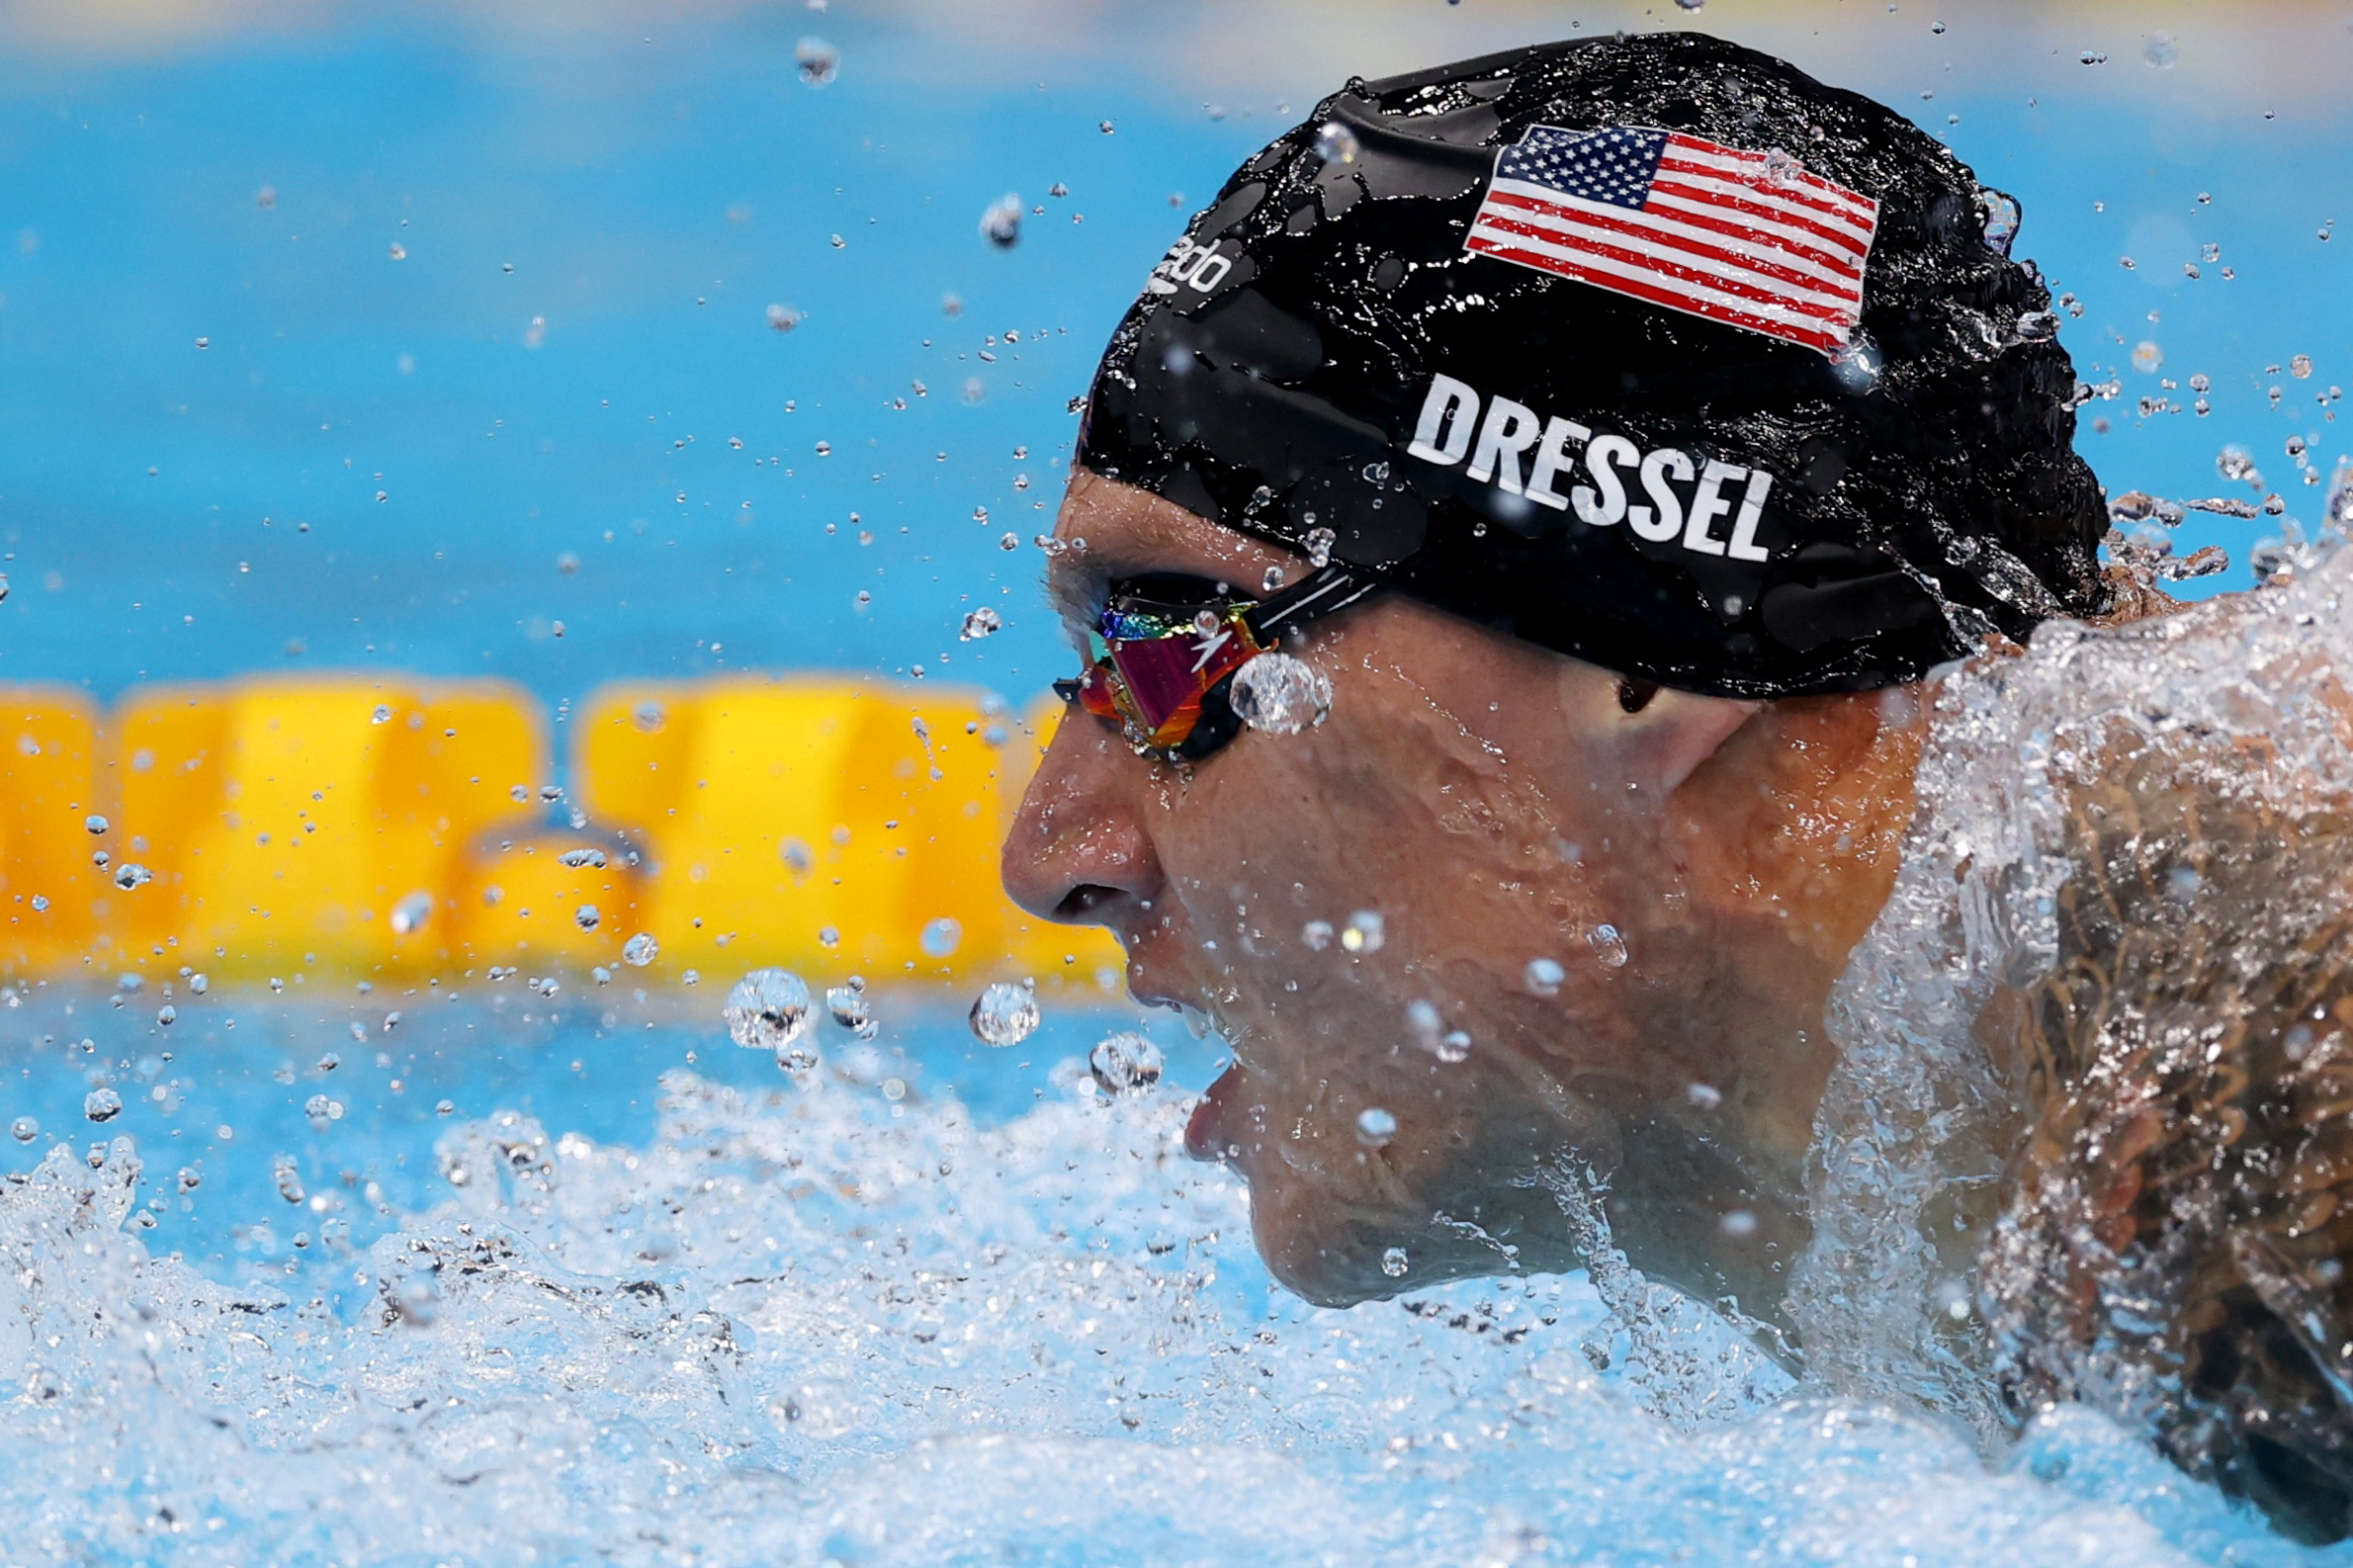 Tokyo 2020 Olympics - Swimming - Men's 100m Butterfly - Final - Tokyo Aquatics Centre - Tokyo, Japan - July 31, 2021. Caeleb Dressel of the United States in action. REUTERS/Carl Recine